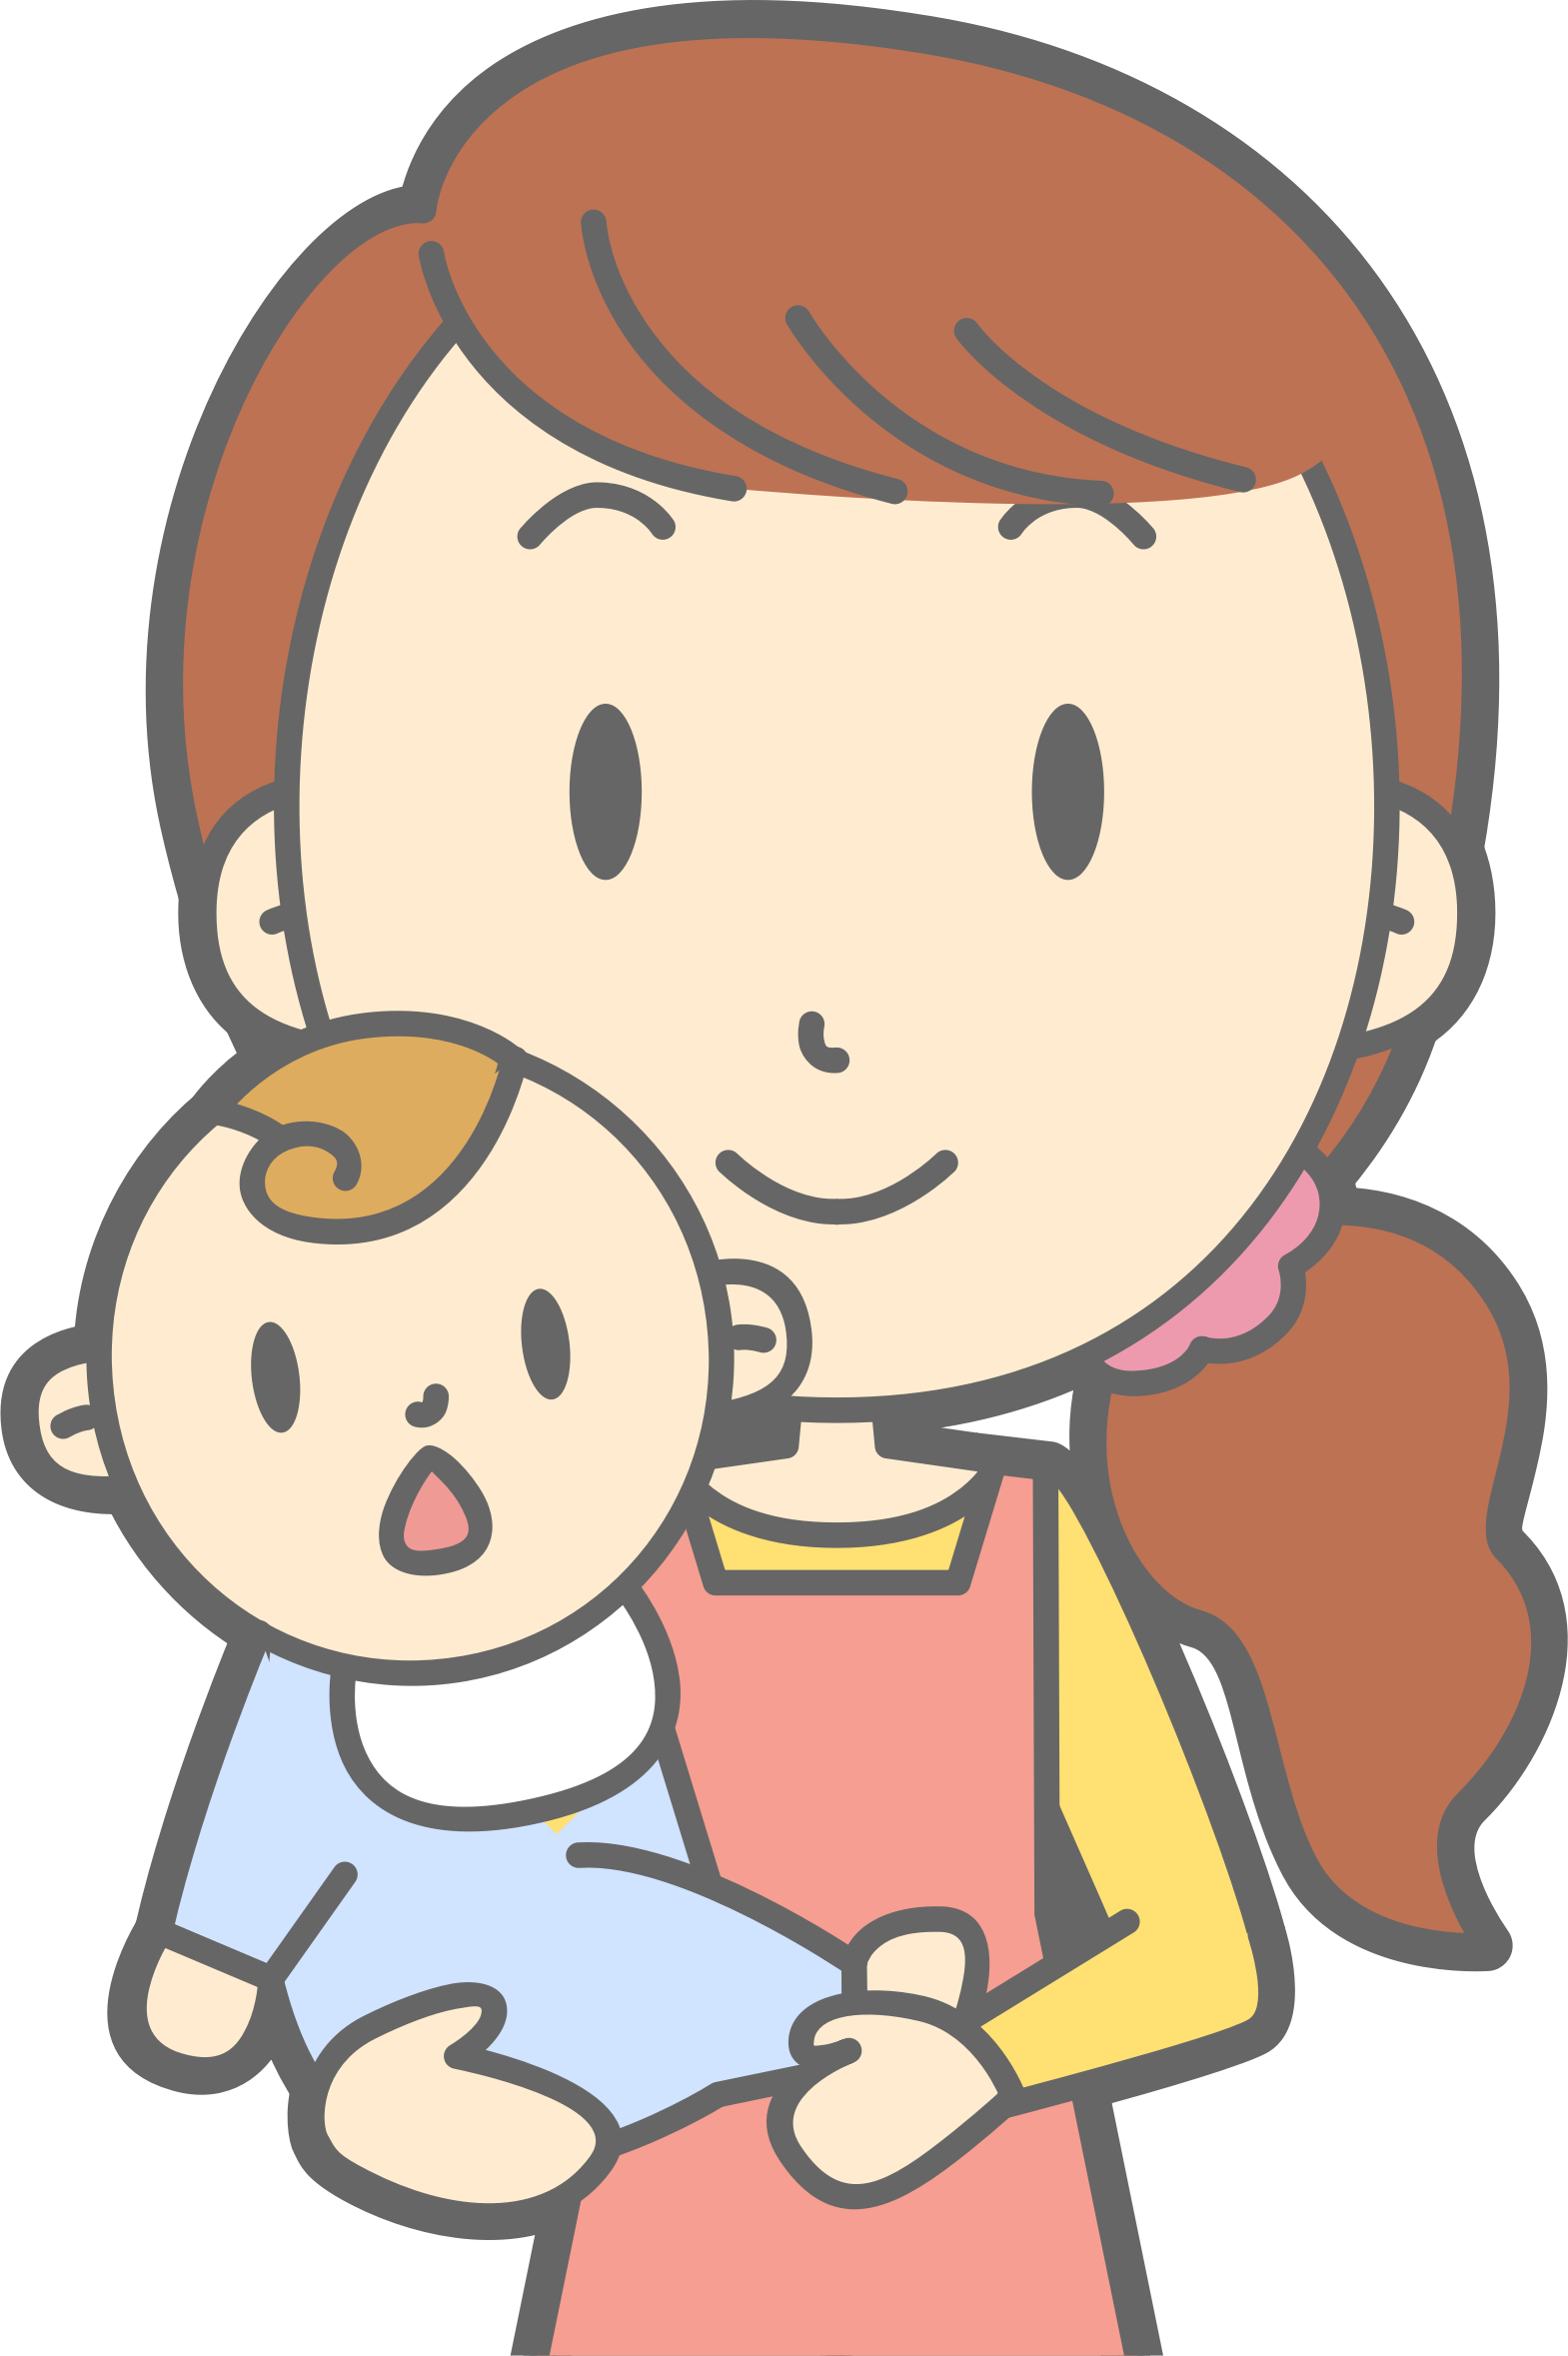 image library stock And baby big image. Clipart mother